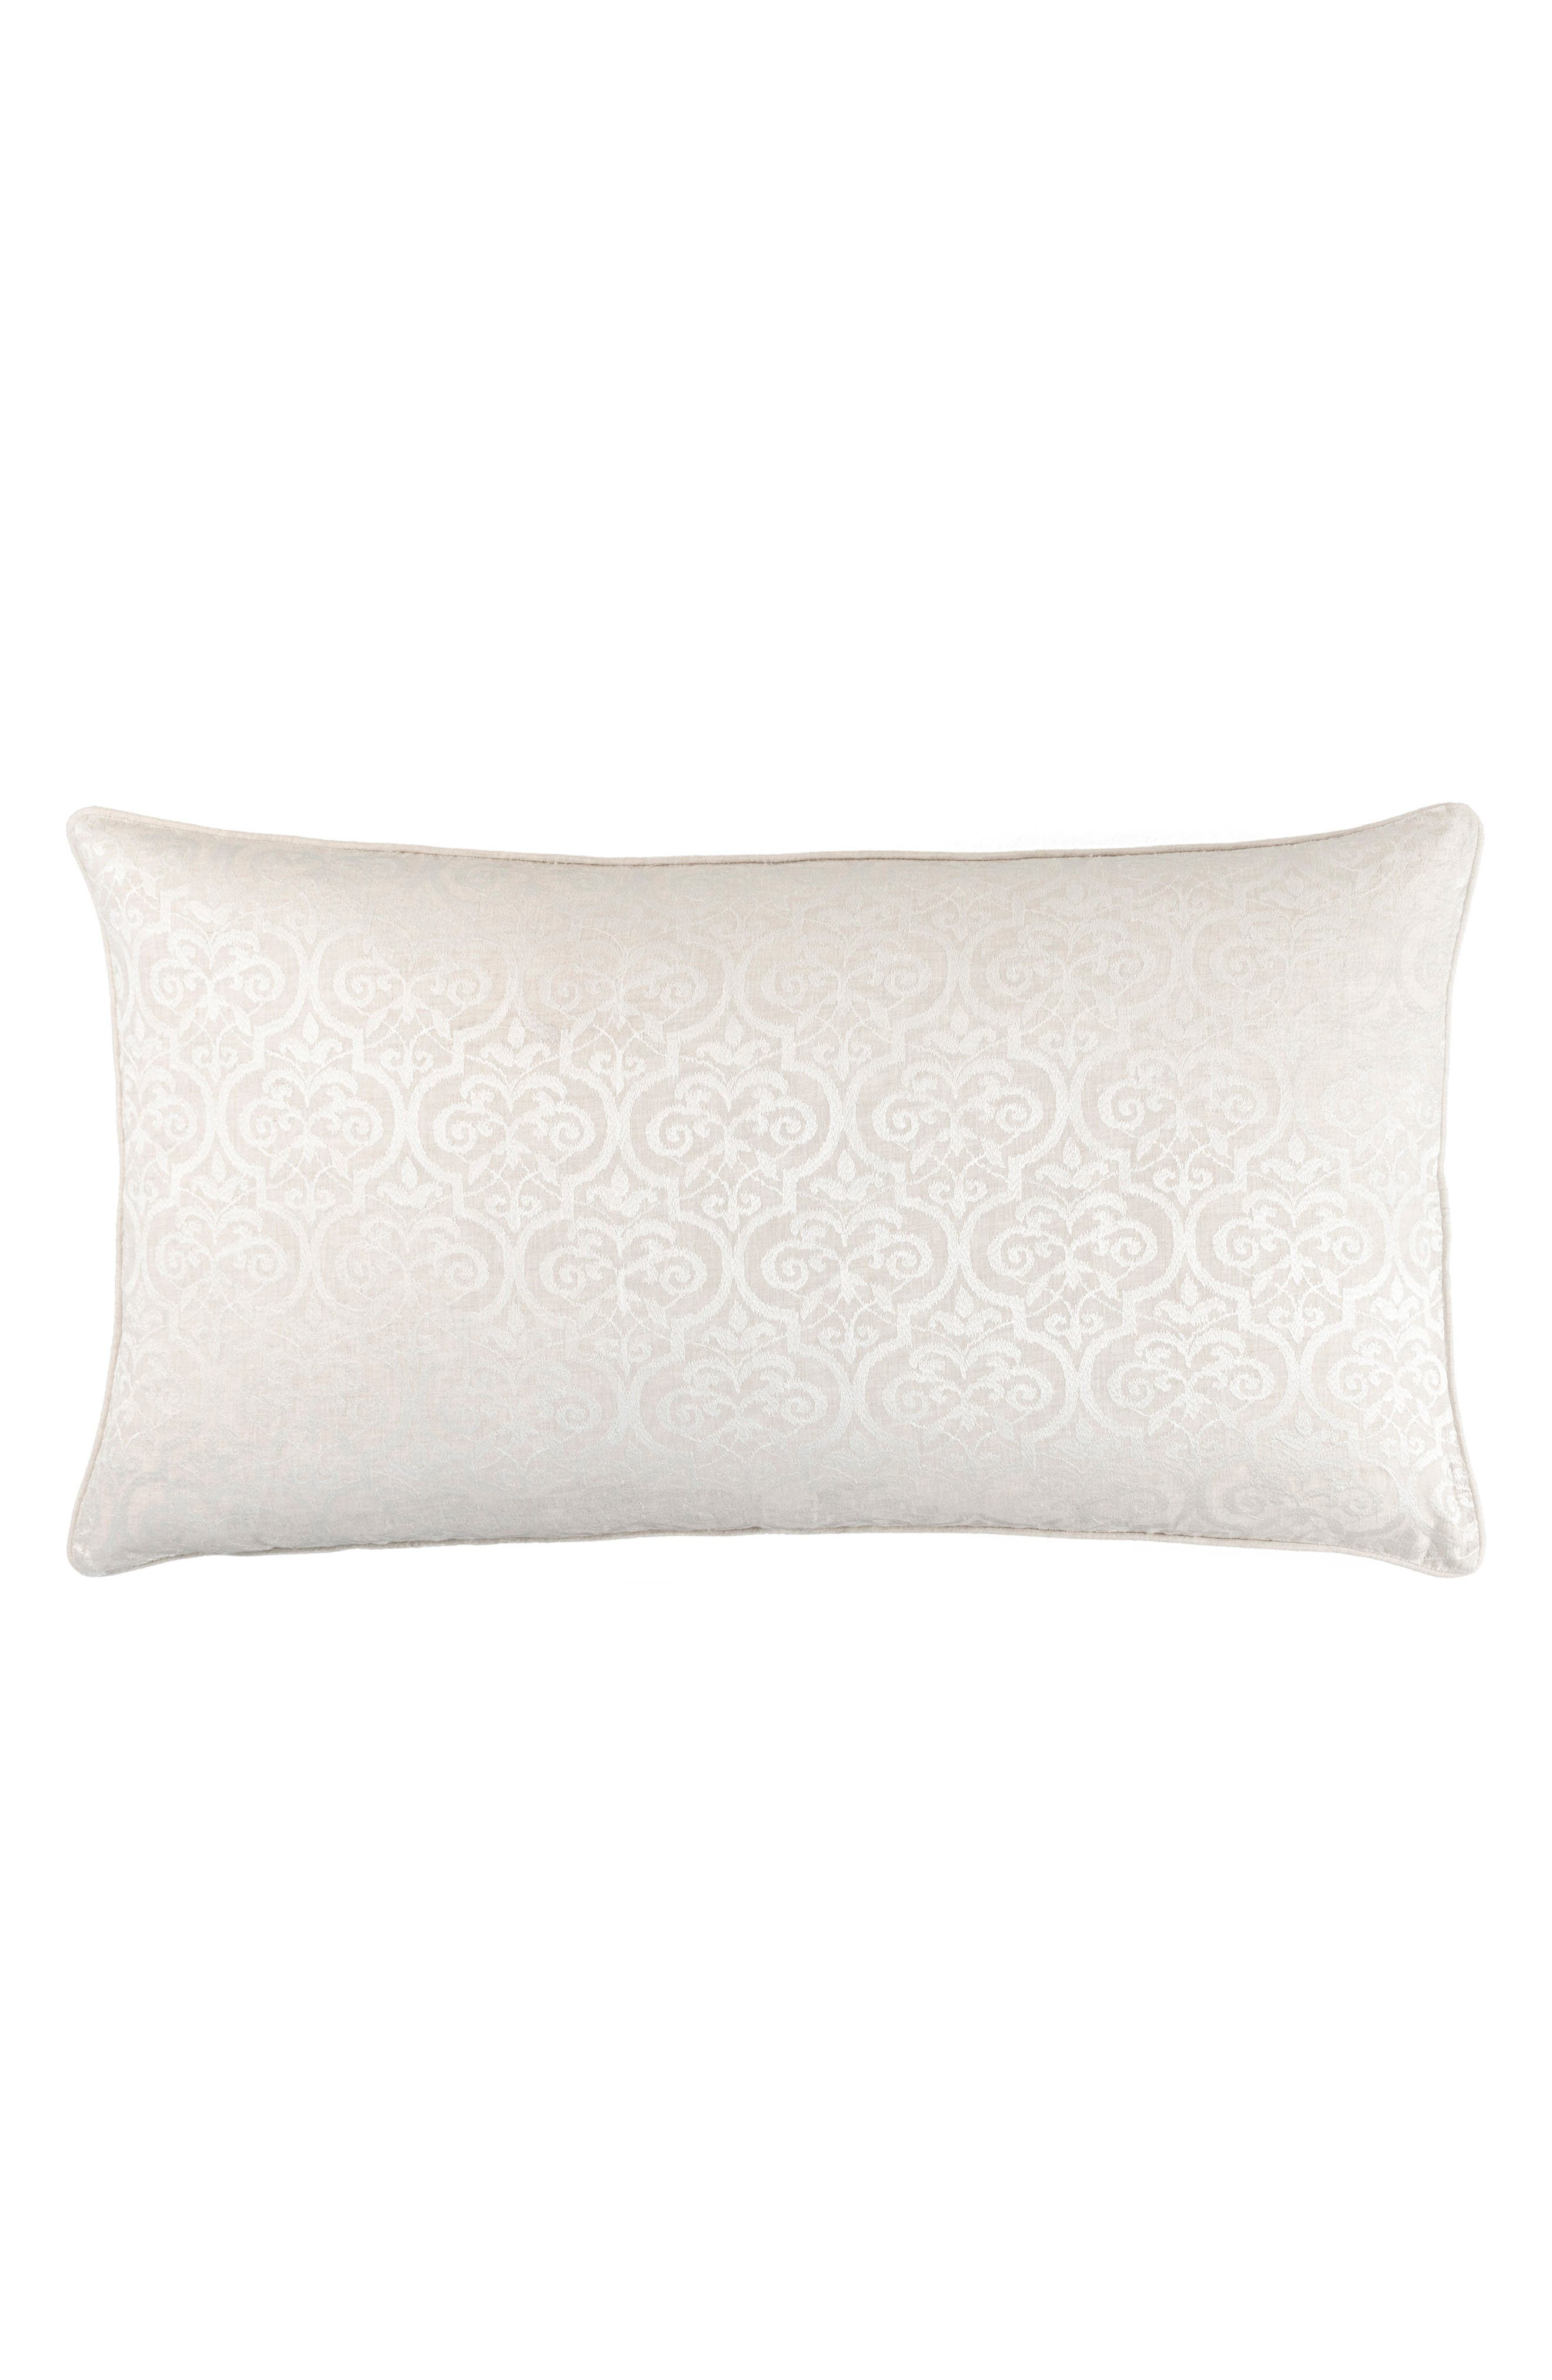 Gwendolyn Embroidered Accent Pillow,                         Main,                         color, Ivory